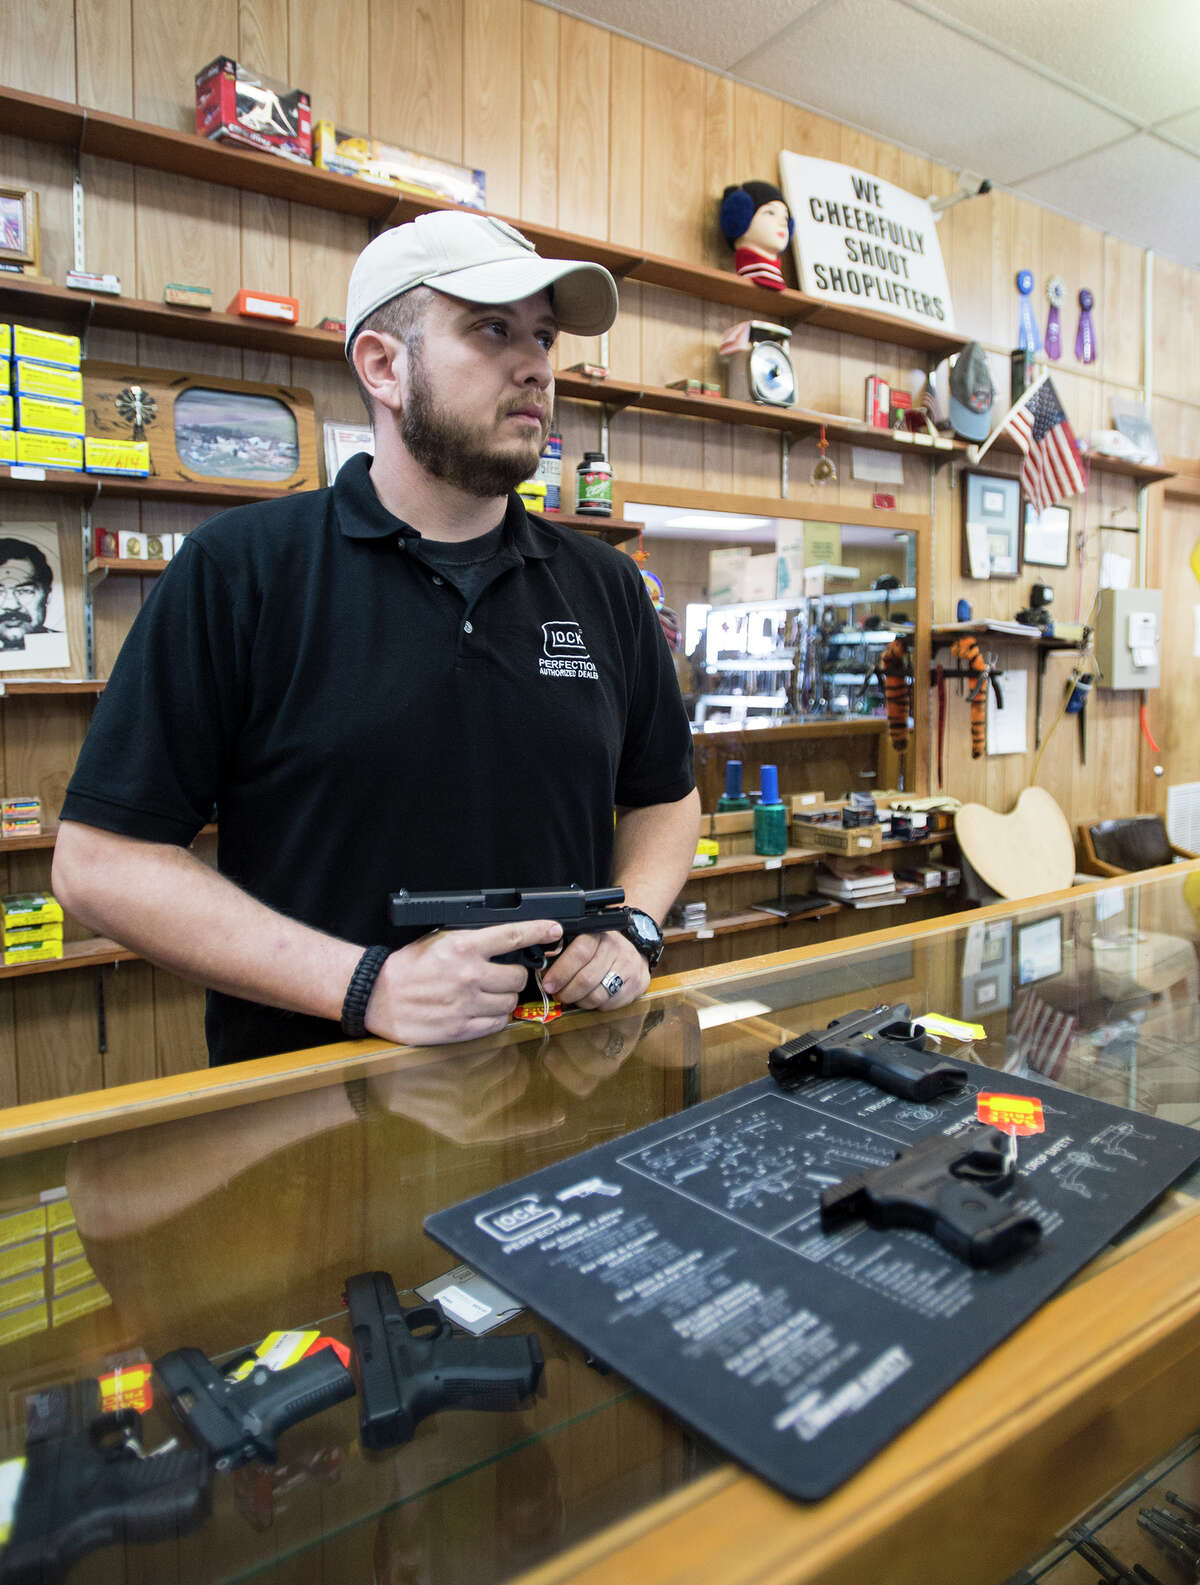 John Troquille of Onpoint CHL talks with a customer about handguns at Ray's Pawn Shop in Bridge City on Friday afternoon. Troquille, a Beaumont native currently living in Bridge City, started up his concealed handgun license class three years ago. Photo taken Friday, 1/17/14 Jake Daniels/@JakeD_in_SETX